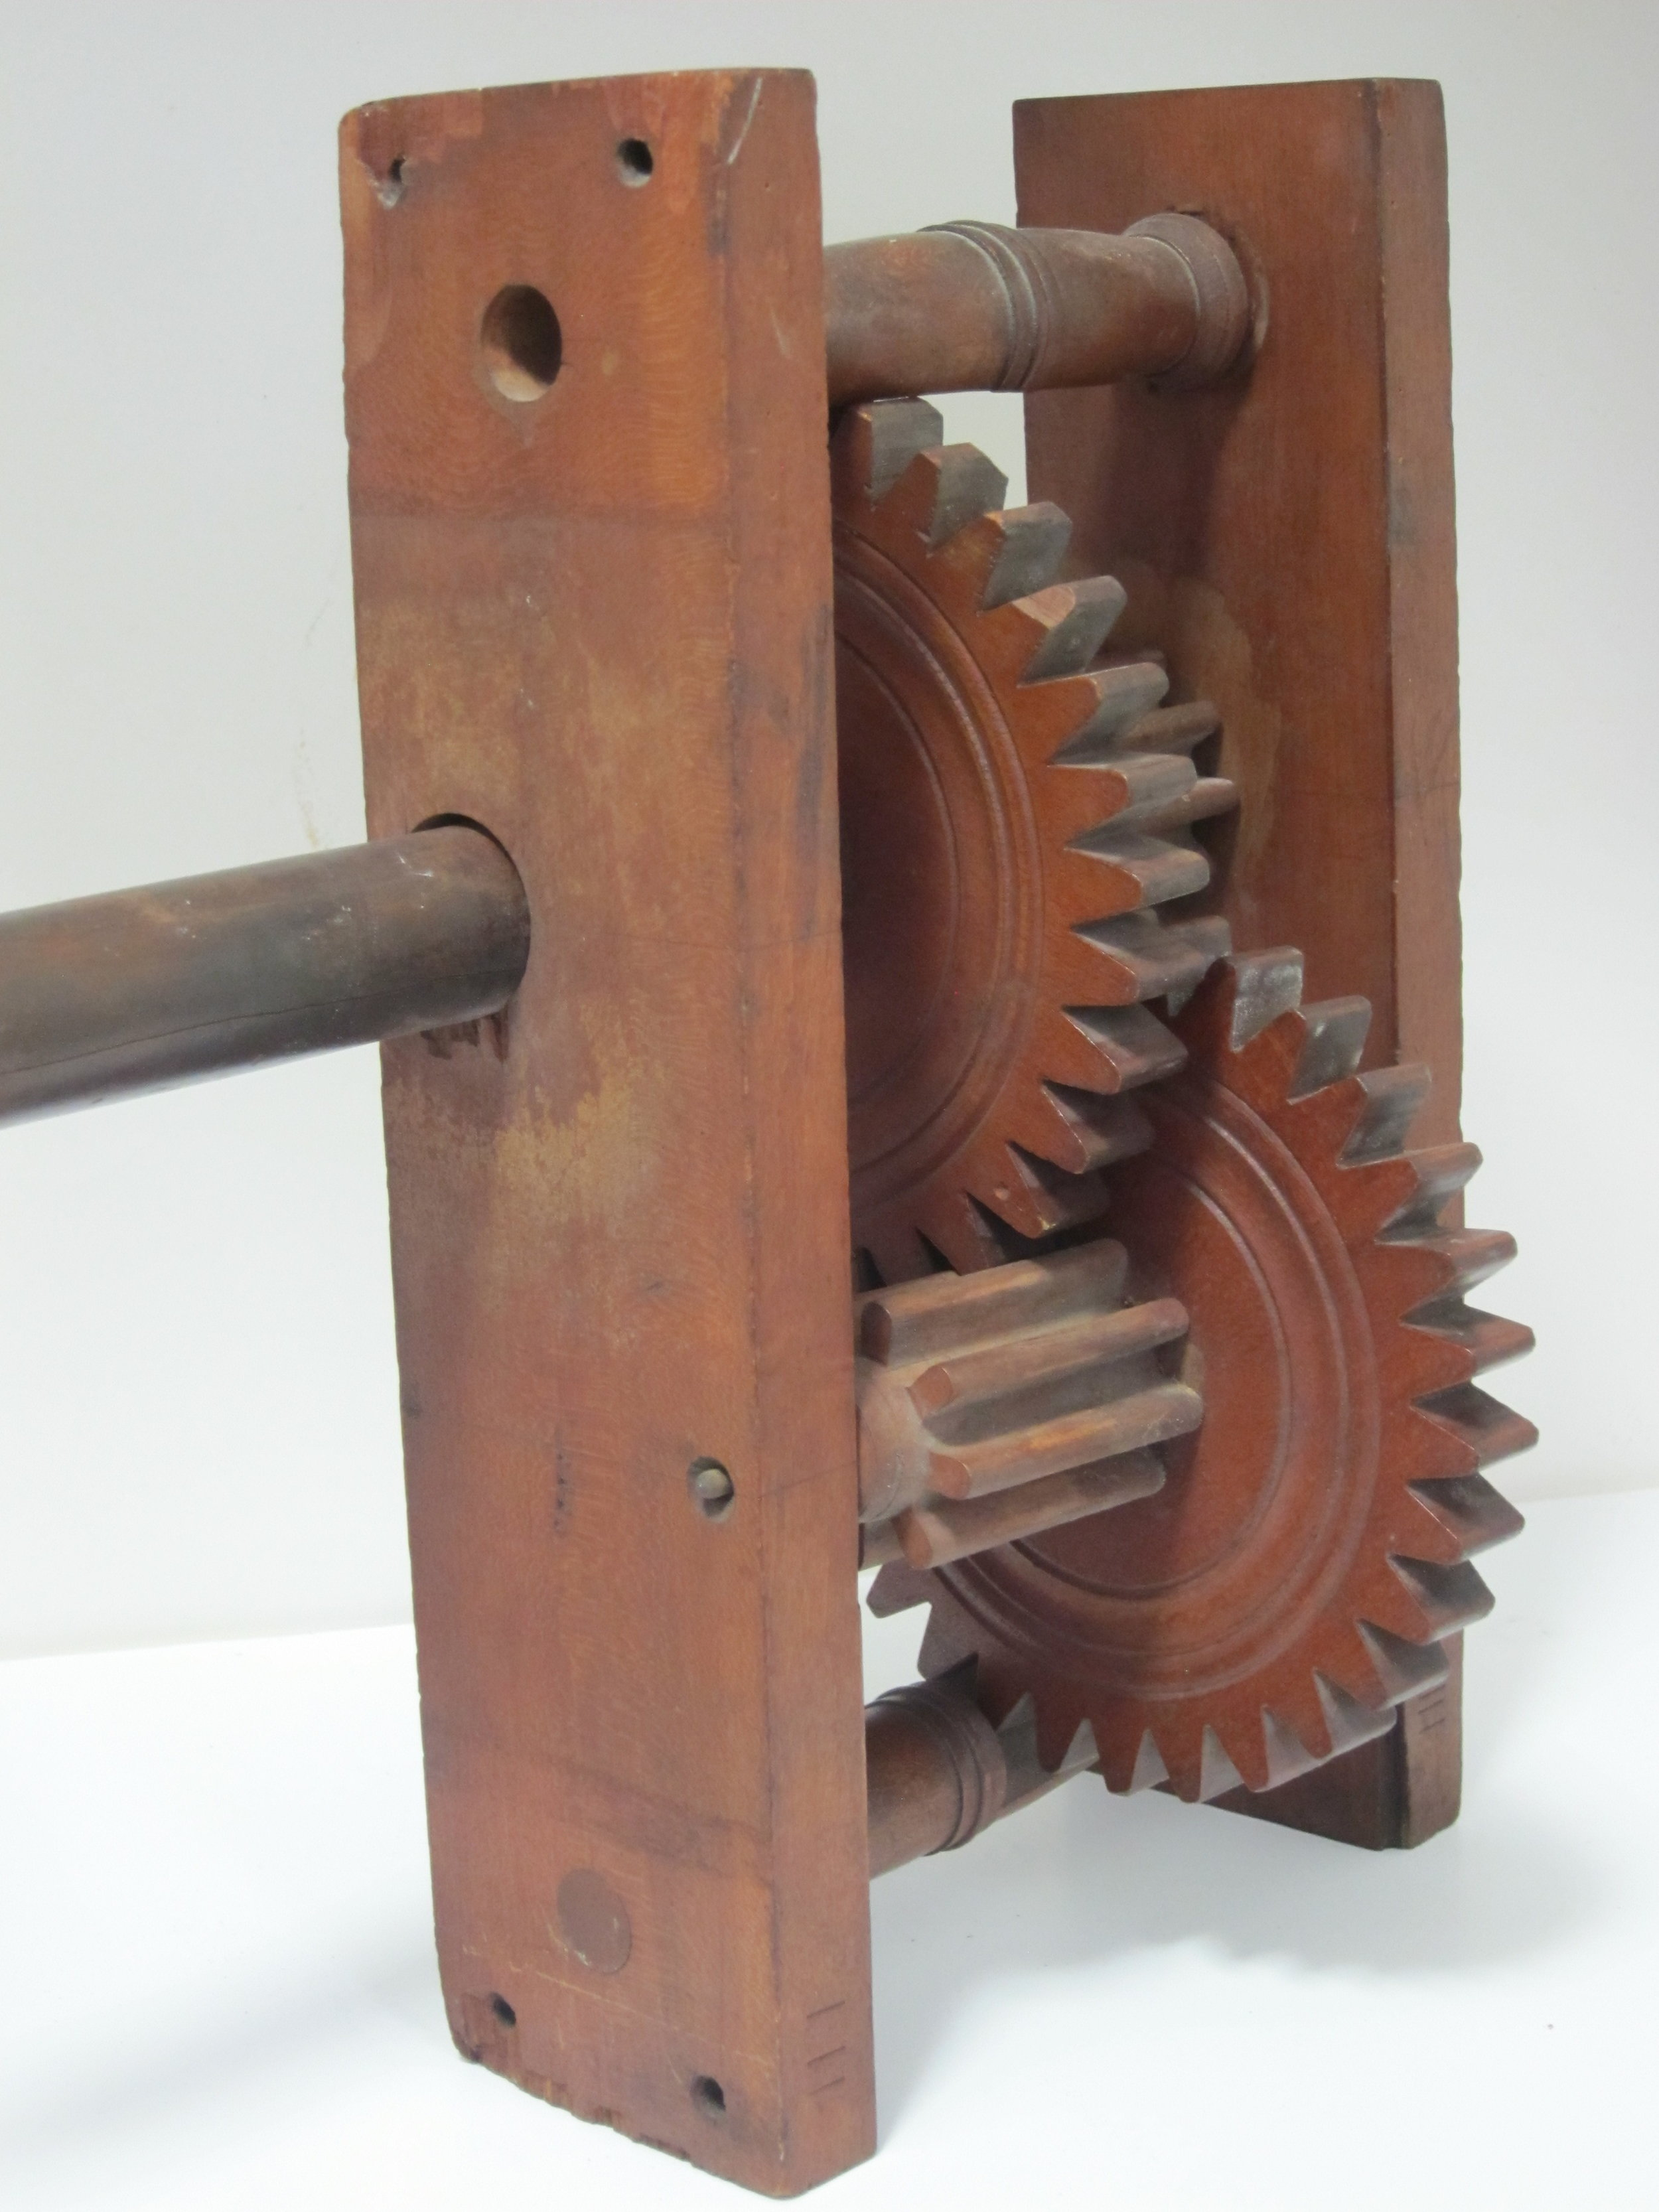 Tower Clock Gears, made by E. N. Byram of Sag Harbor